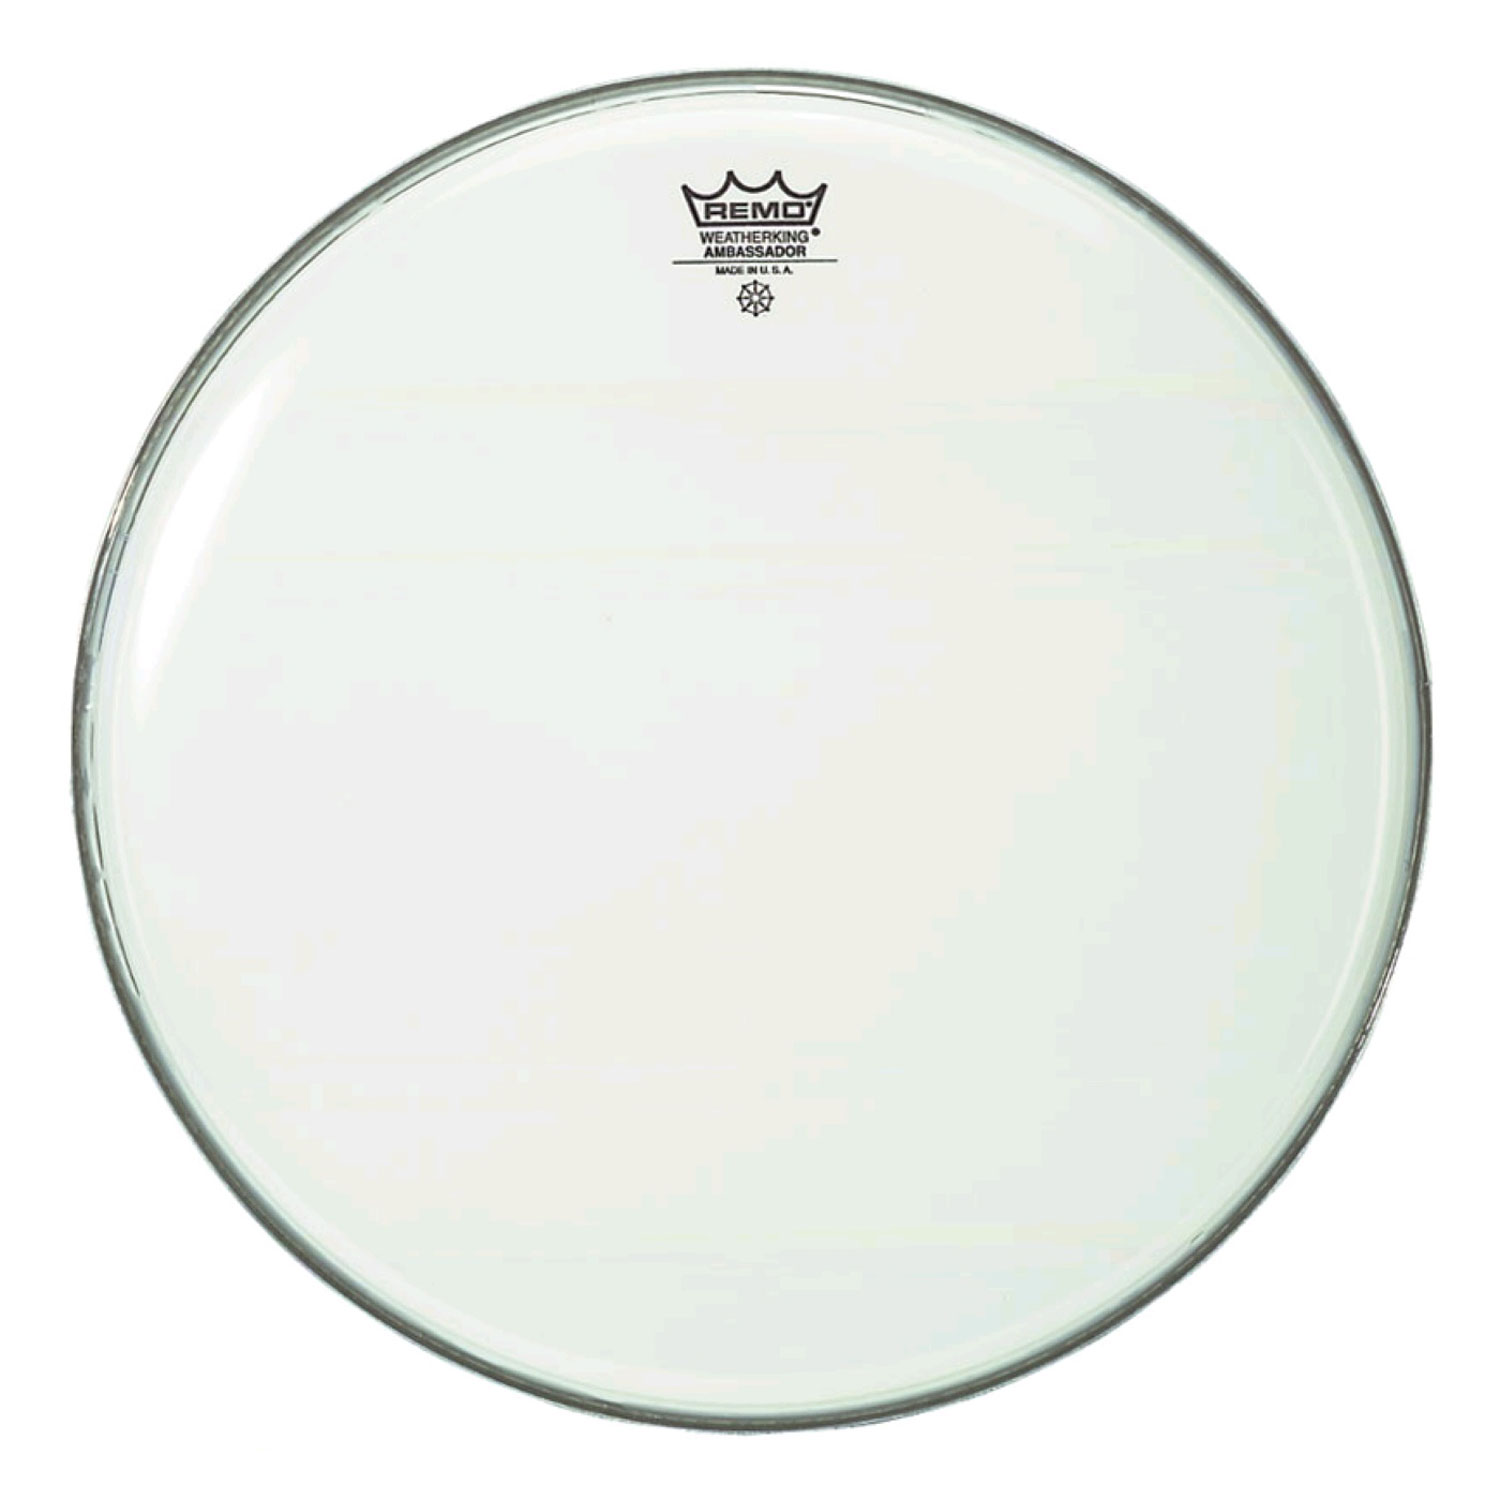 "Remo 16"" Ambassador Smooth White Drum Head"